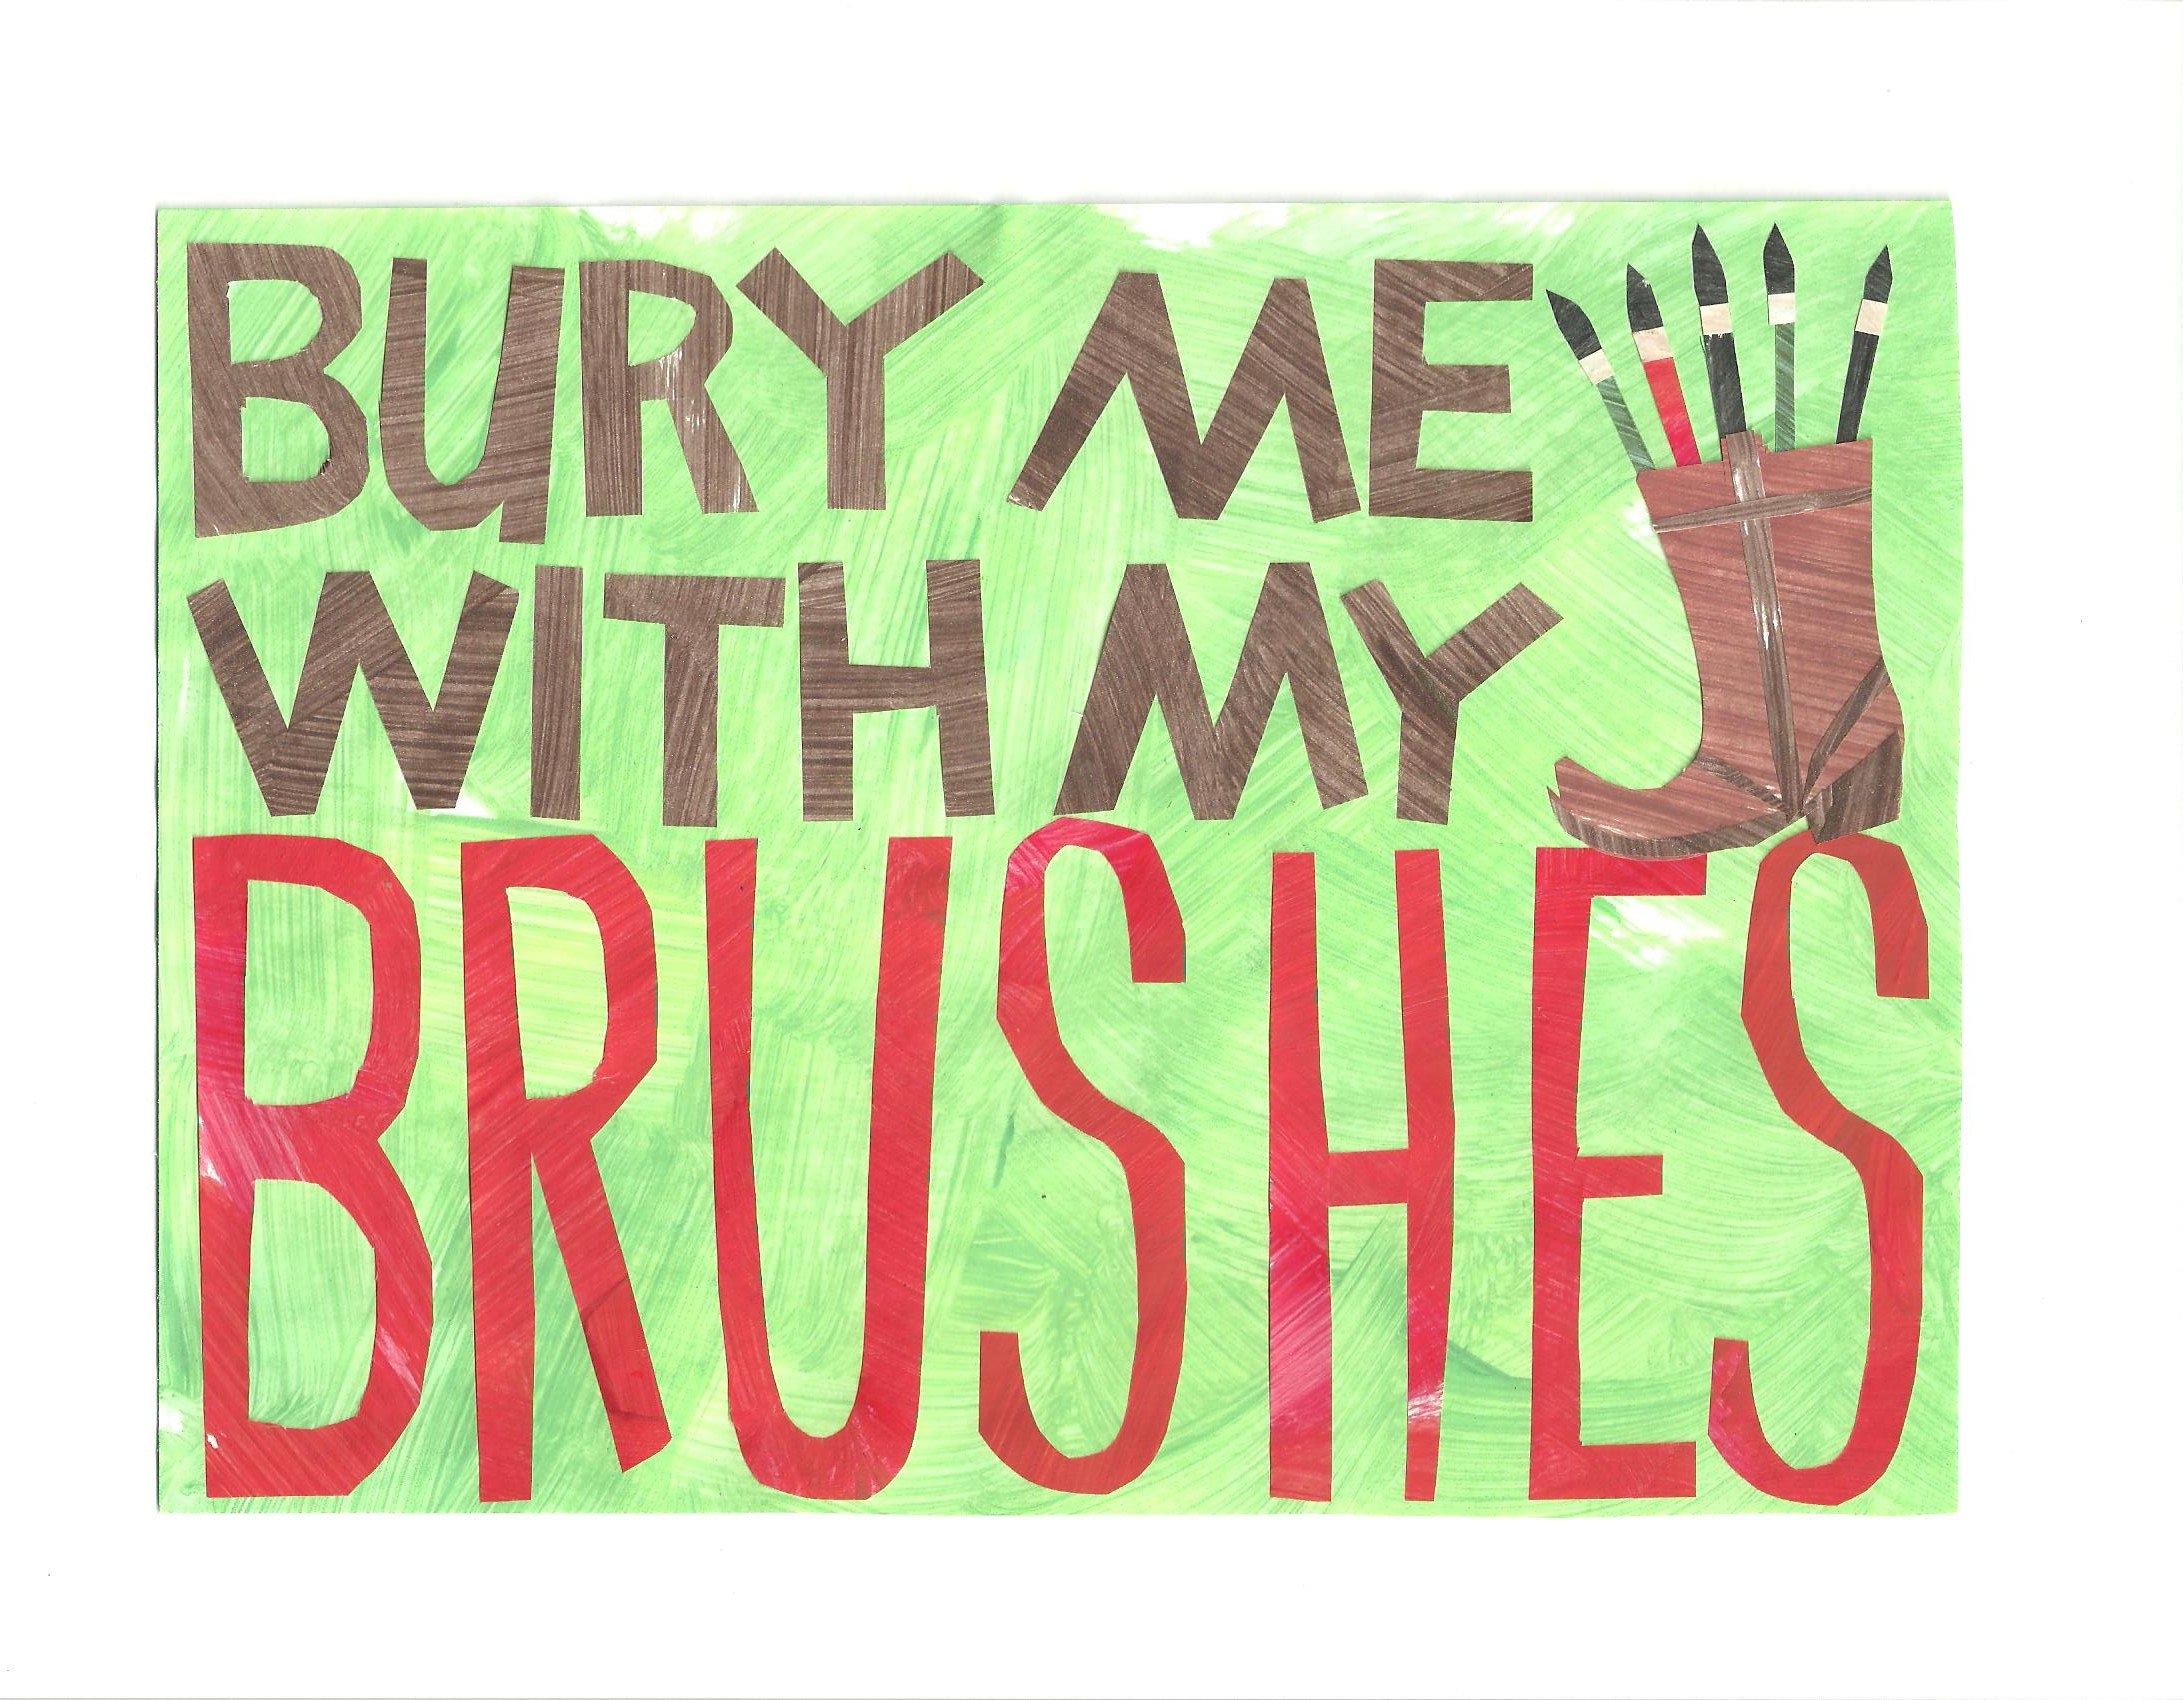 bury with brushes 001